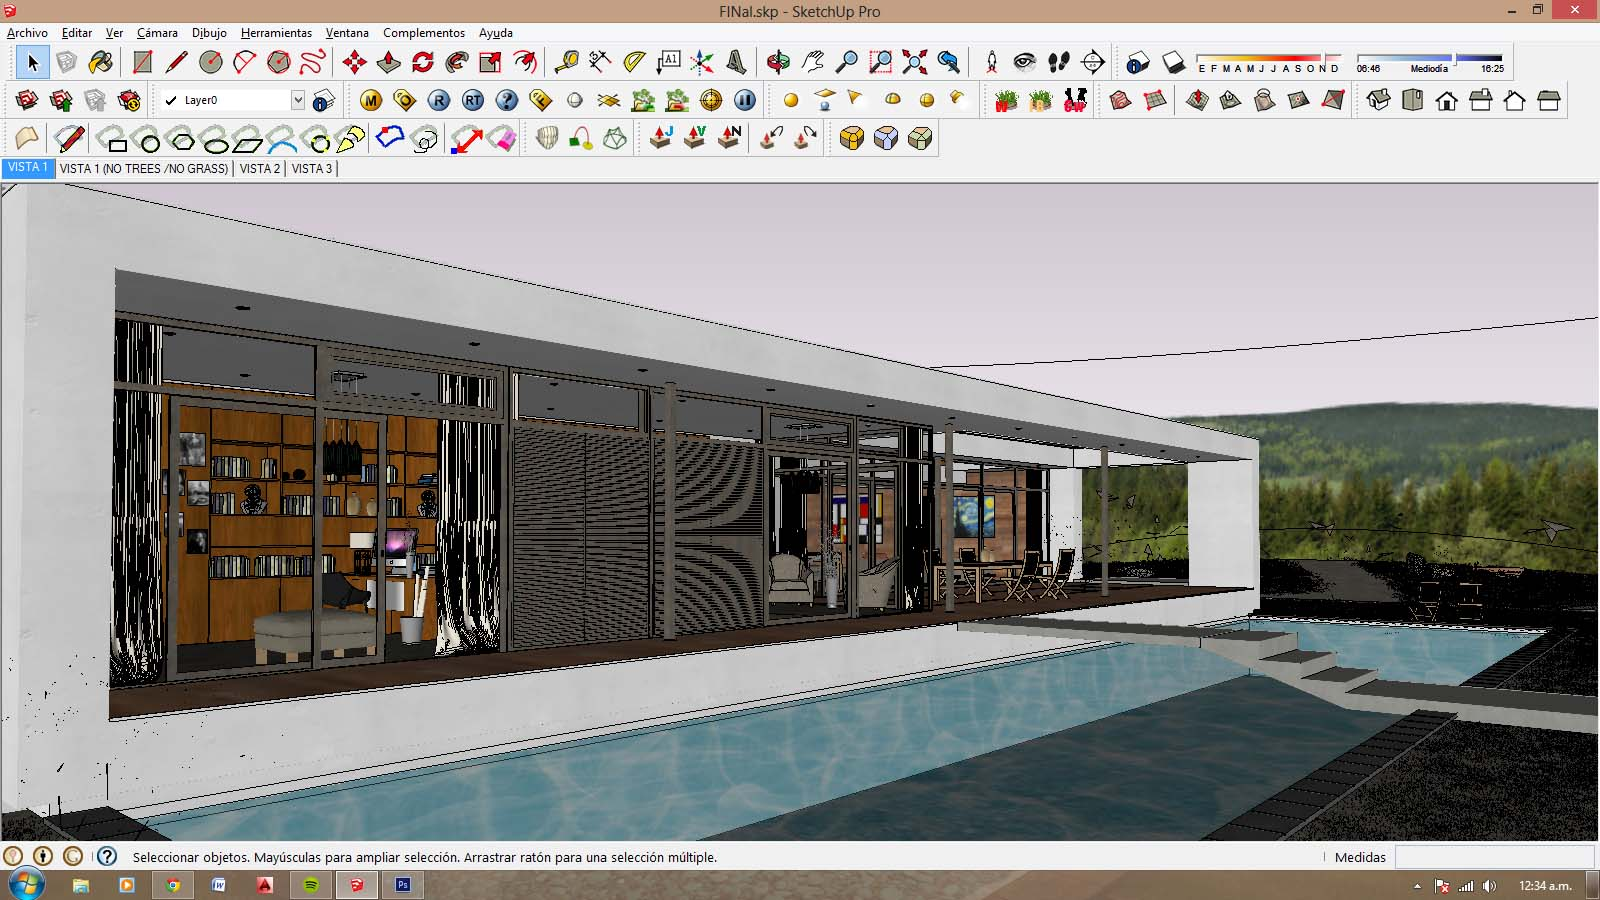 Sketchup texture free sketchup 3d model house with pool for Pool design sketchup